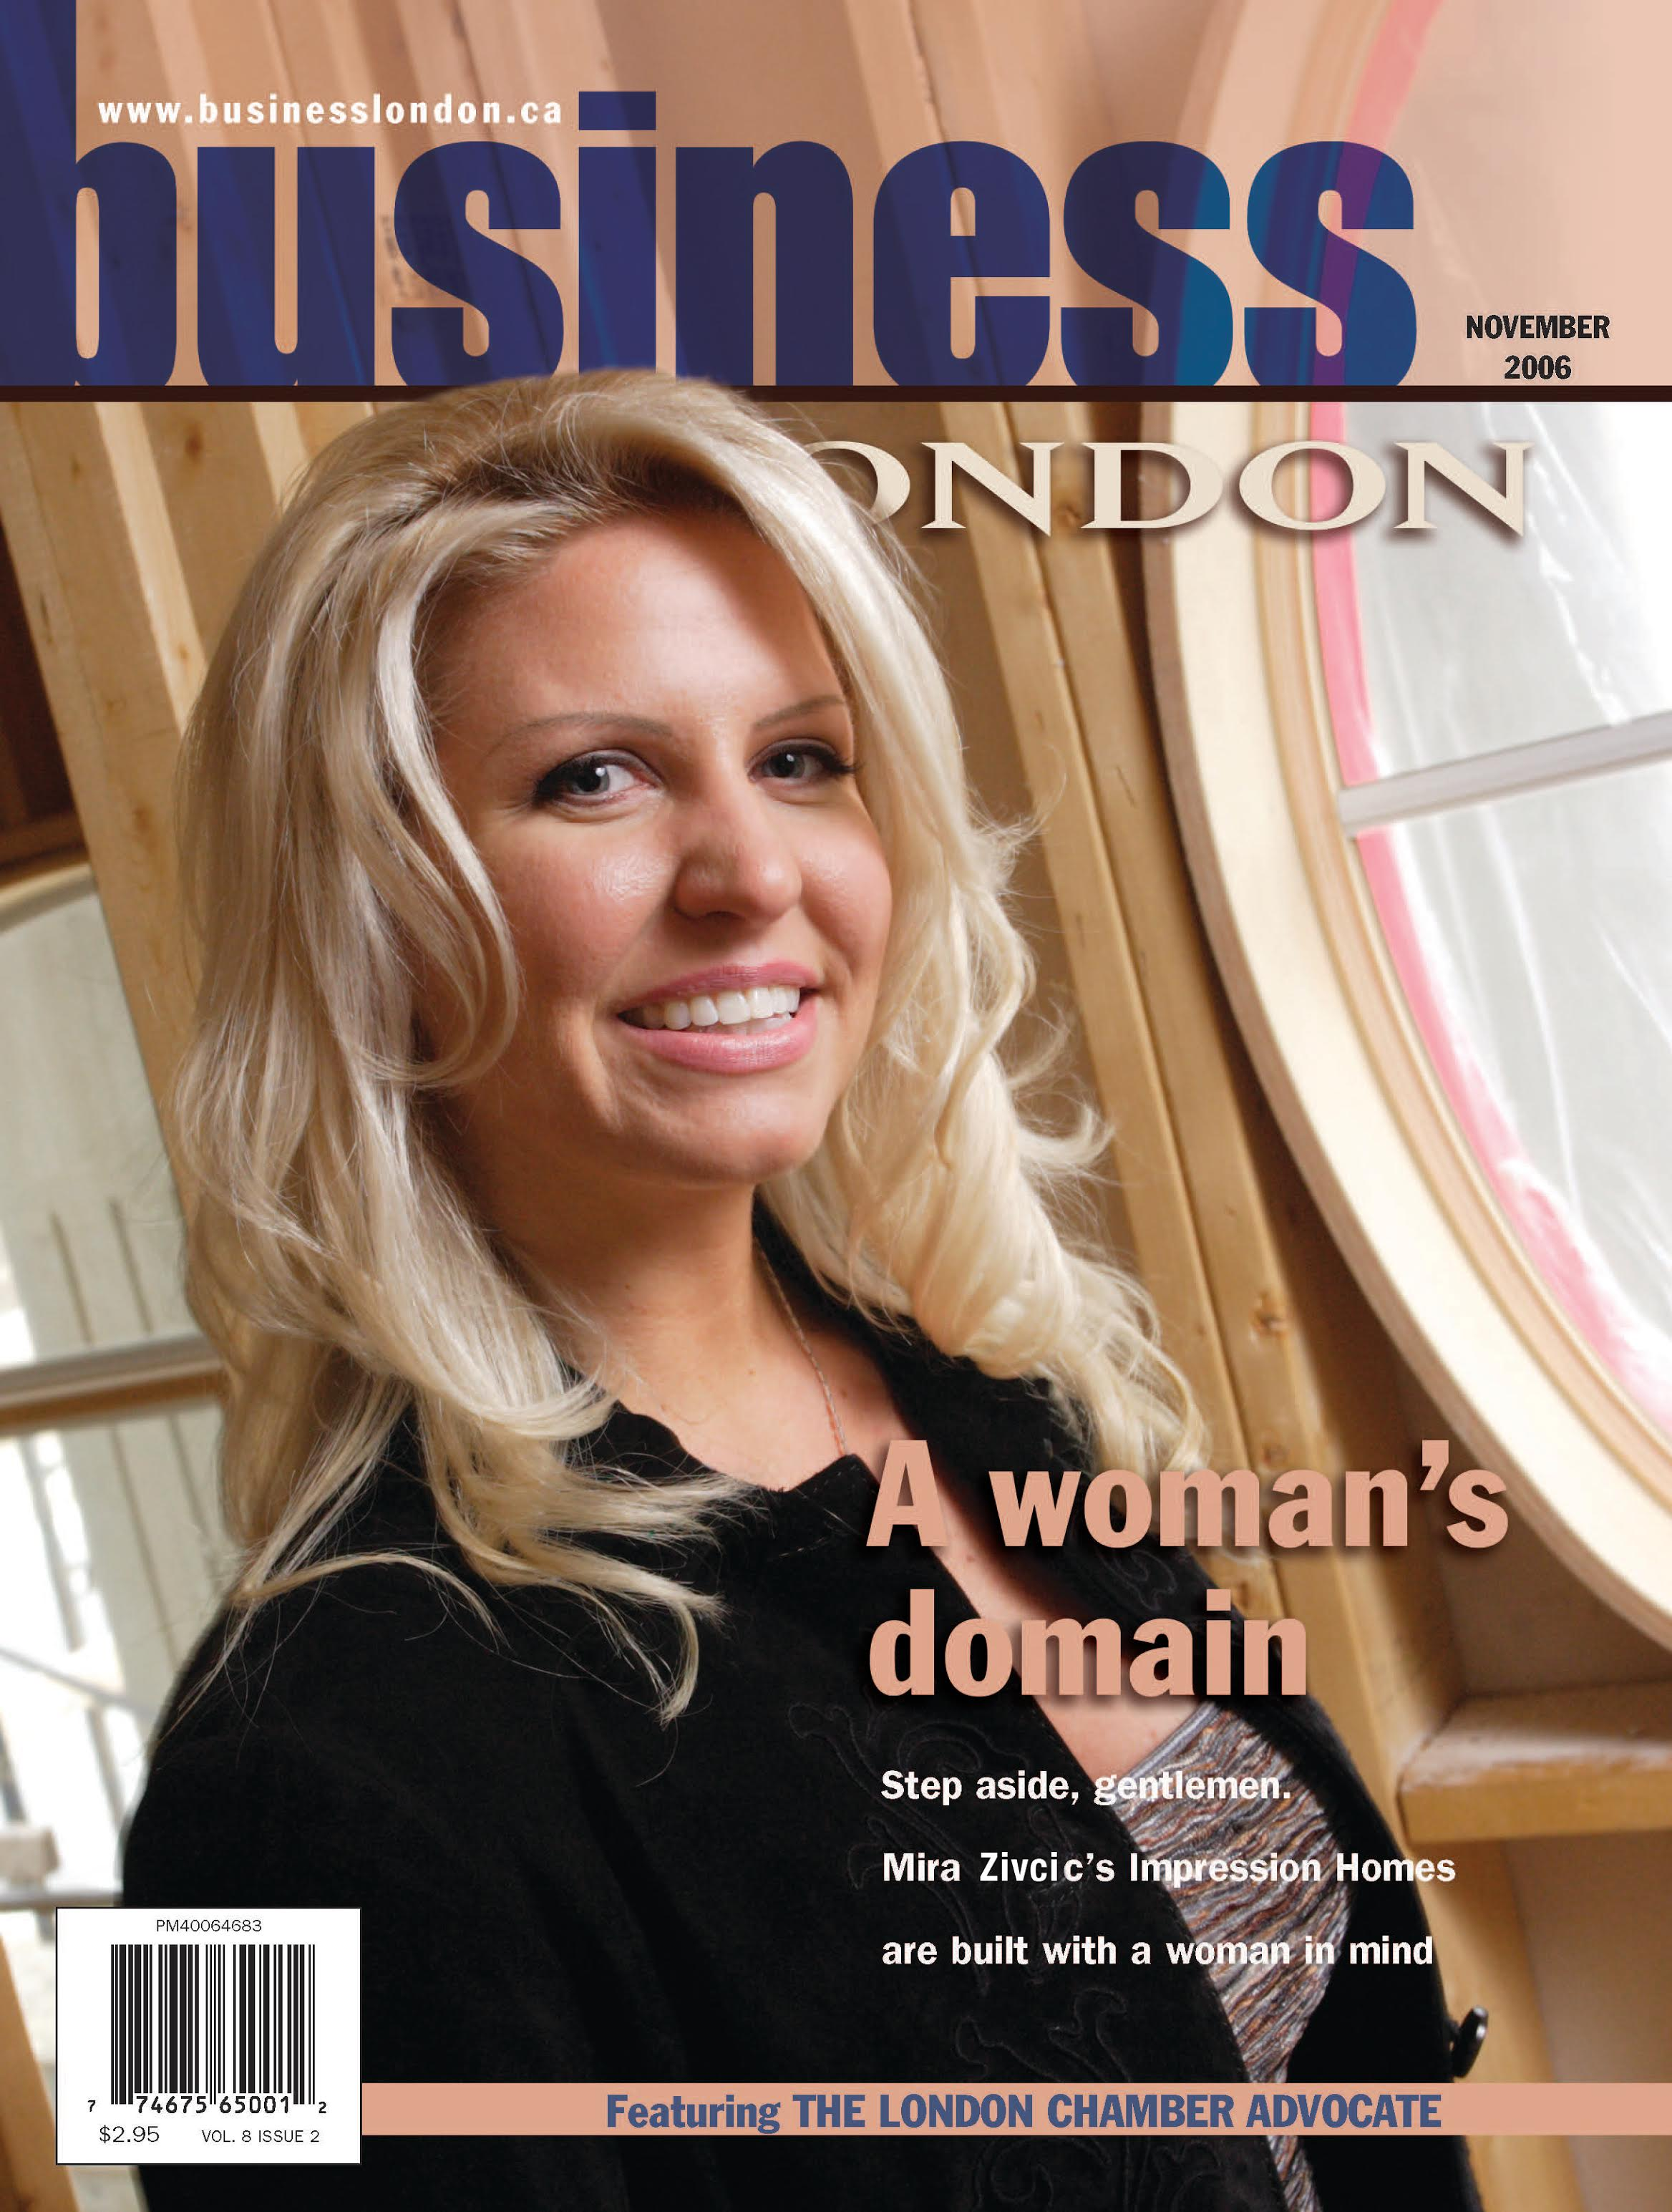 Business London Magazine Featuring Mira